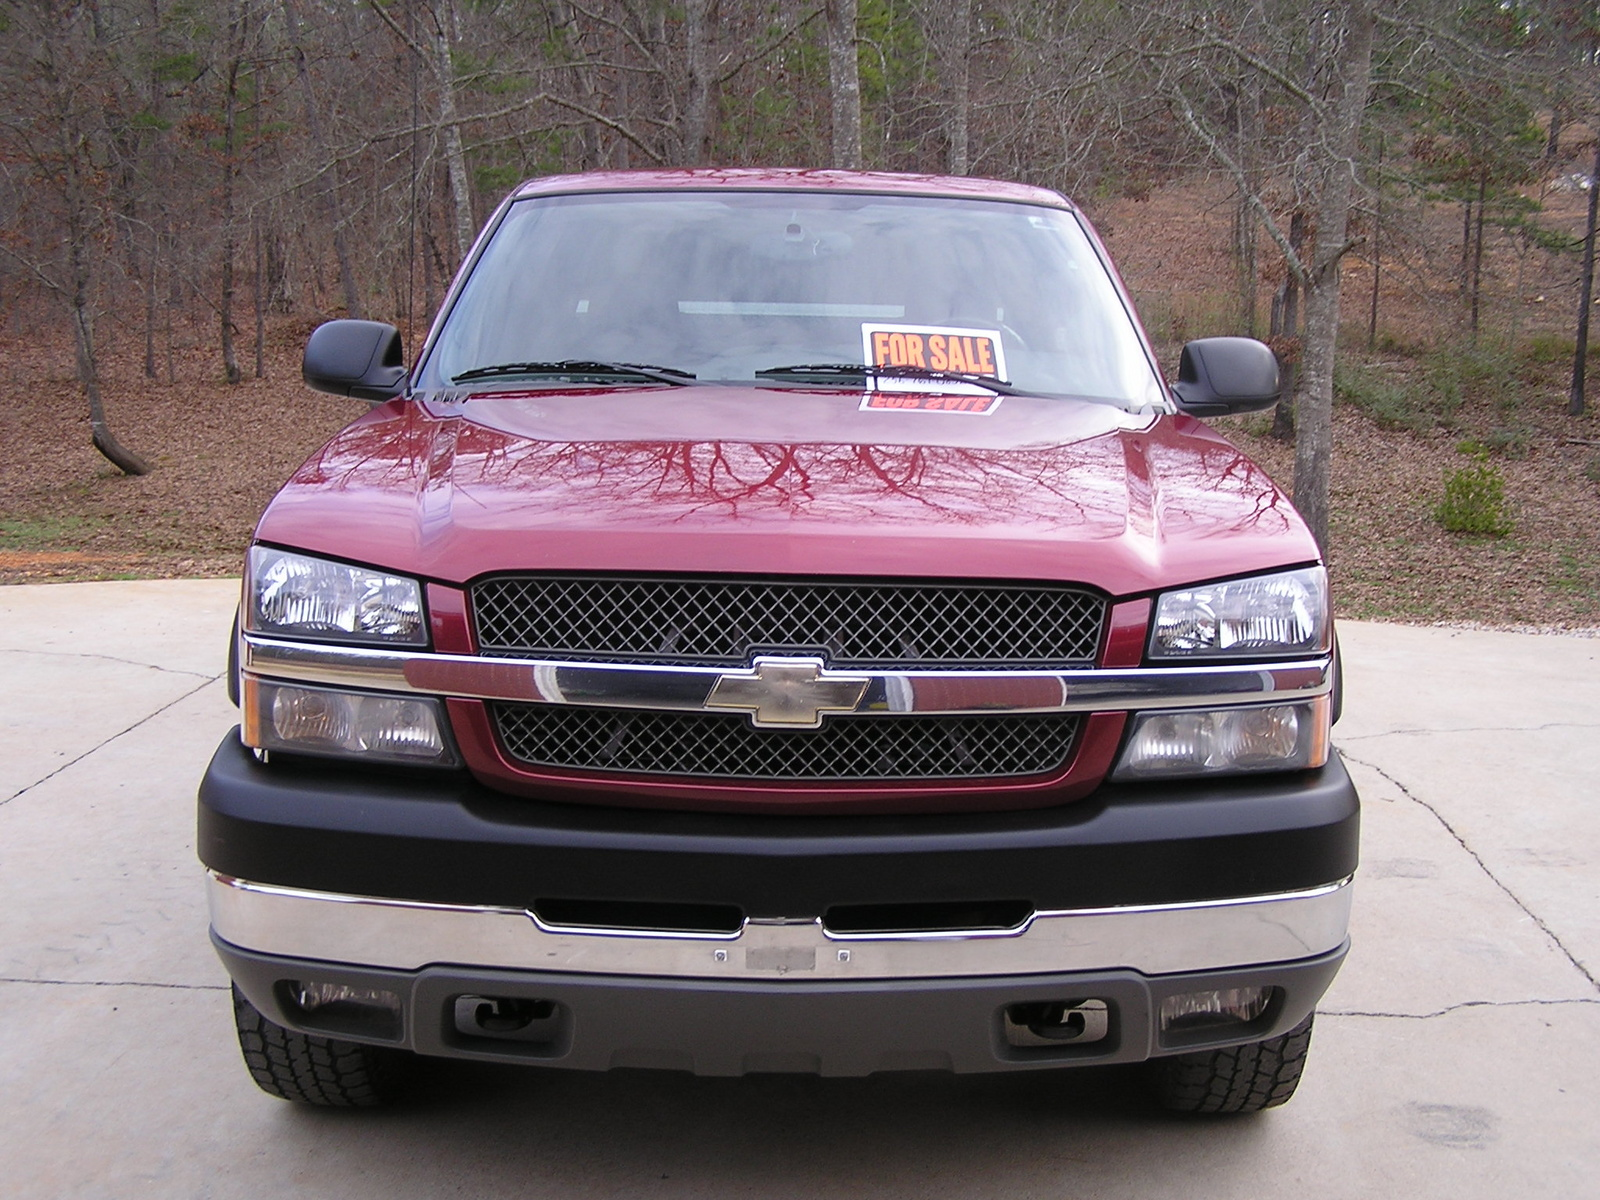 03 yukon xl 2500 bumper swap options chevy tahoe forum. Black Bedroom Furniture Sets. Home Design Ideas